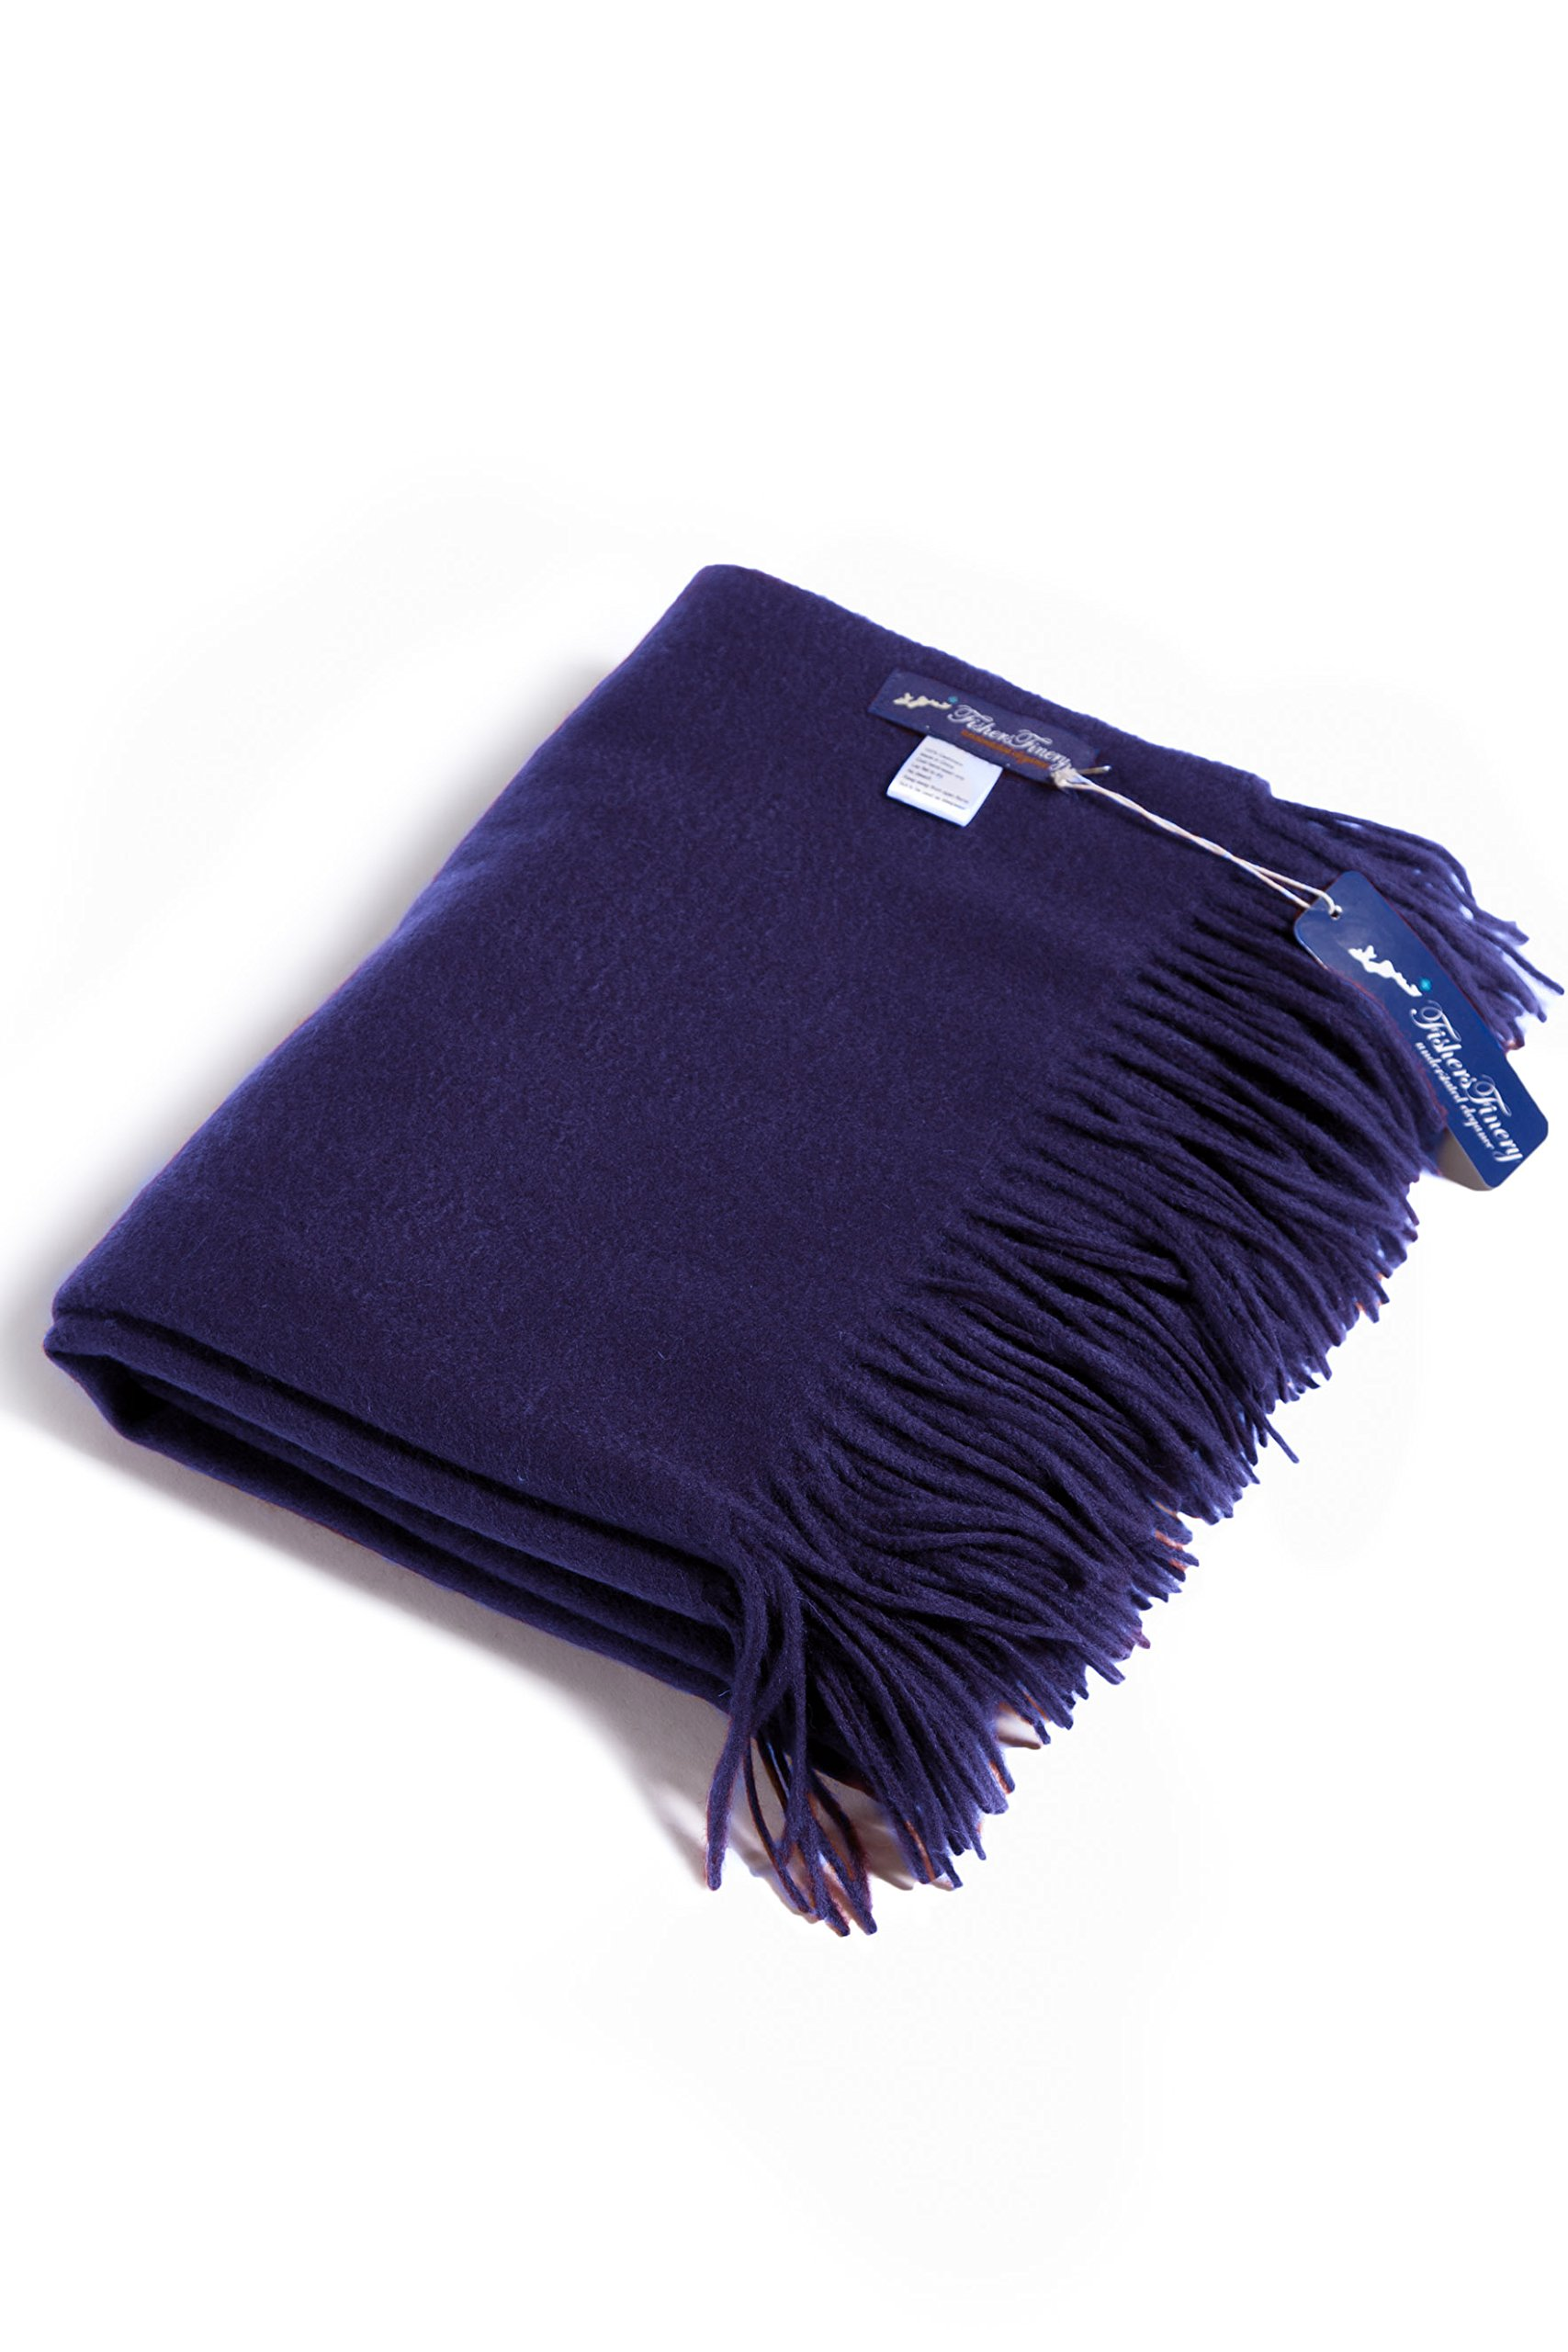 Fishers Finery 100% Pure Cashmere Winter Fringe Throw Blanket (Navy)